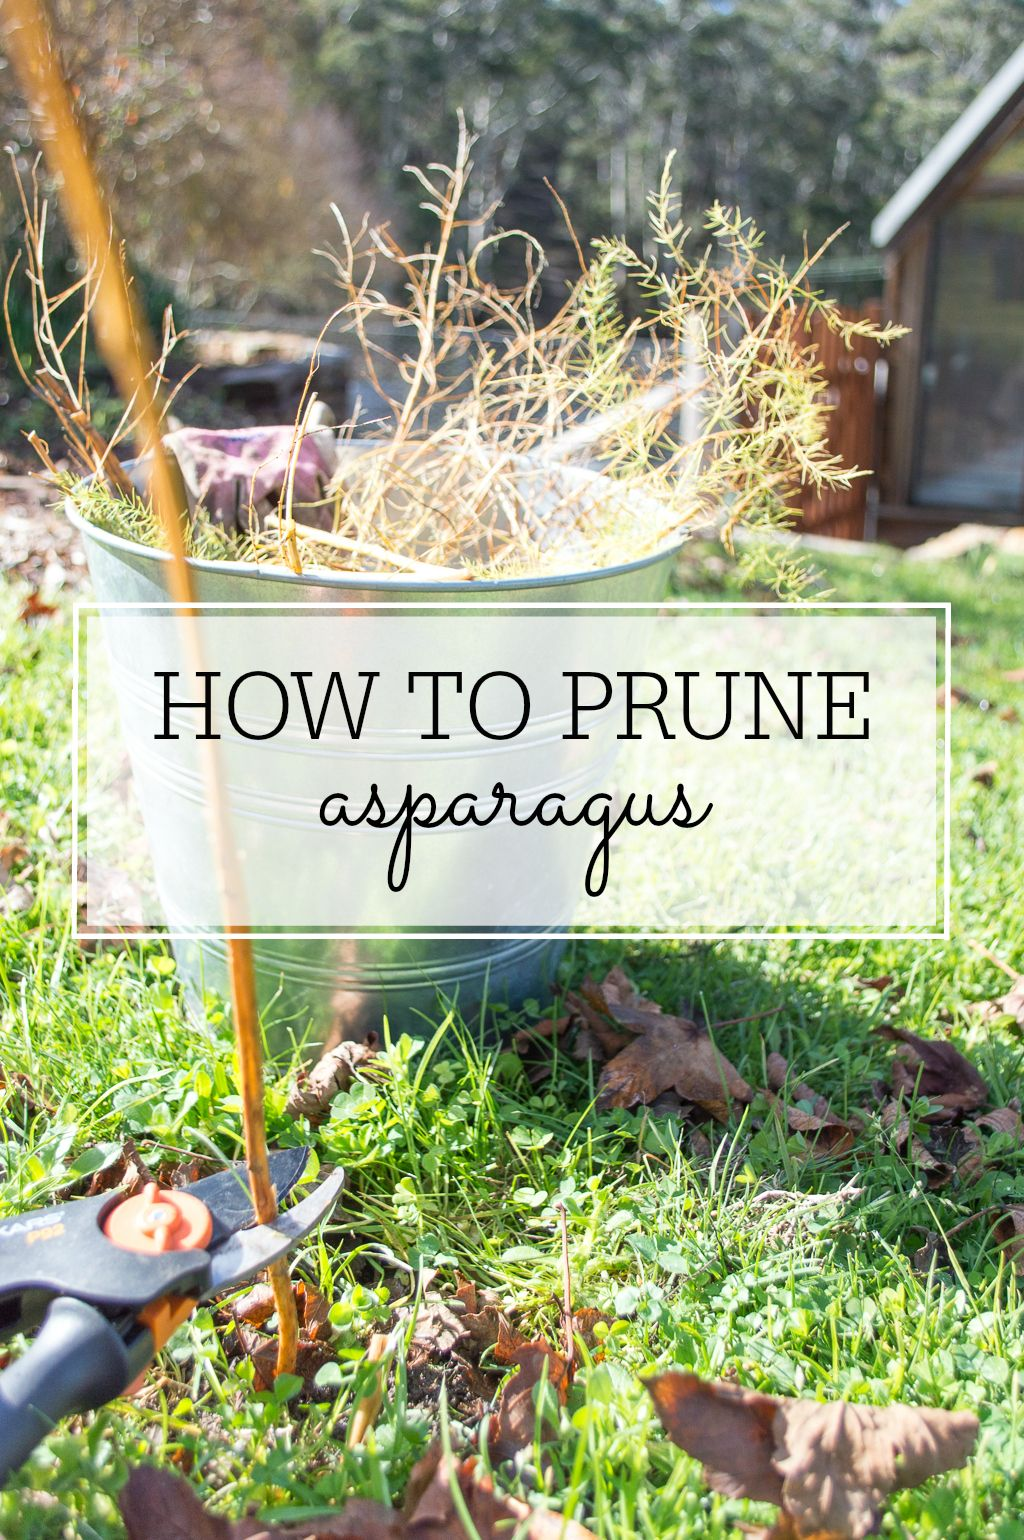 How To Prune Asparagus - Planting 101 | Asparagus plant ... Planting Asparagus In The Fall